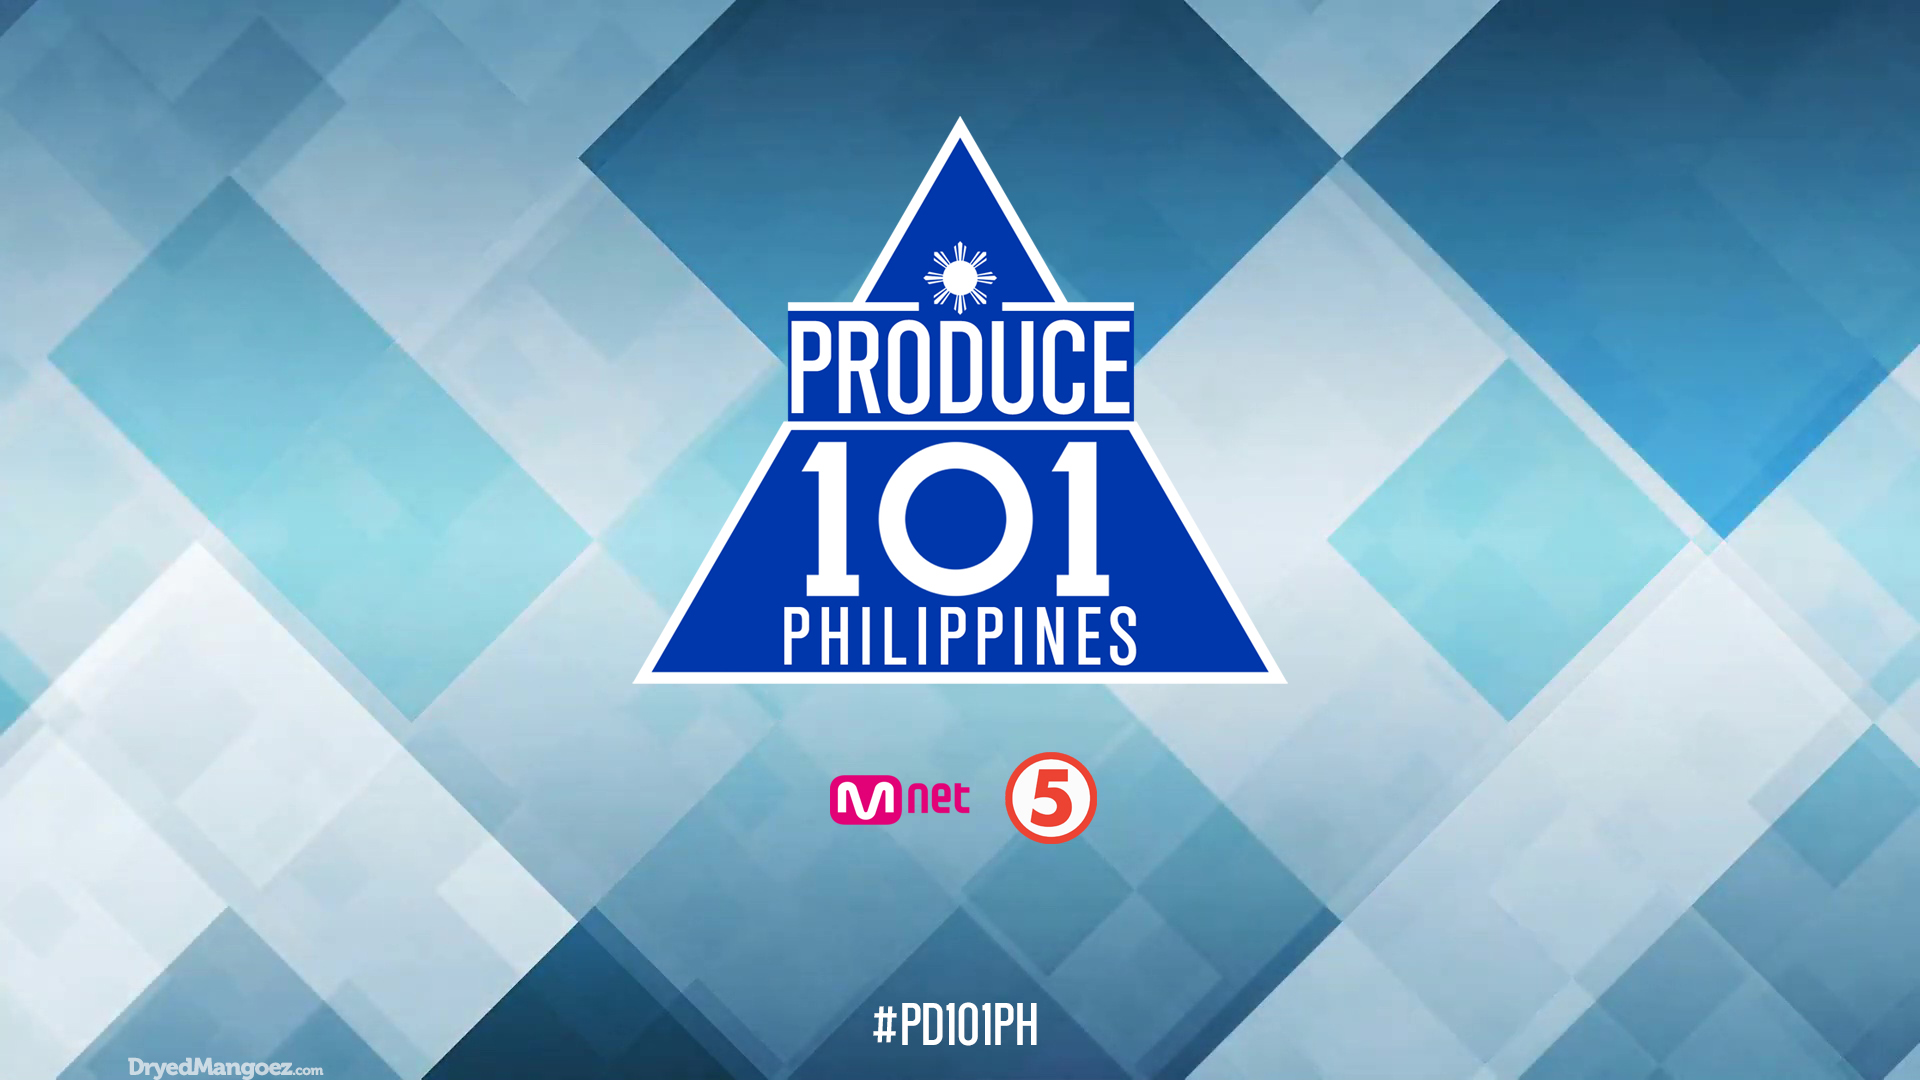 Concept/Pitch: Produce 101 Philippines